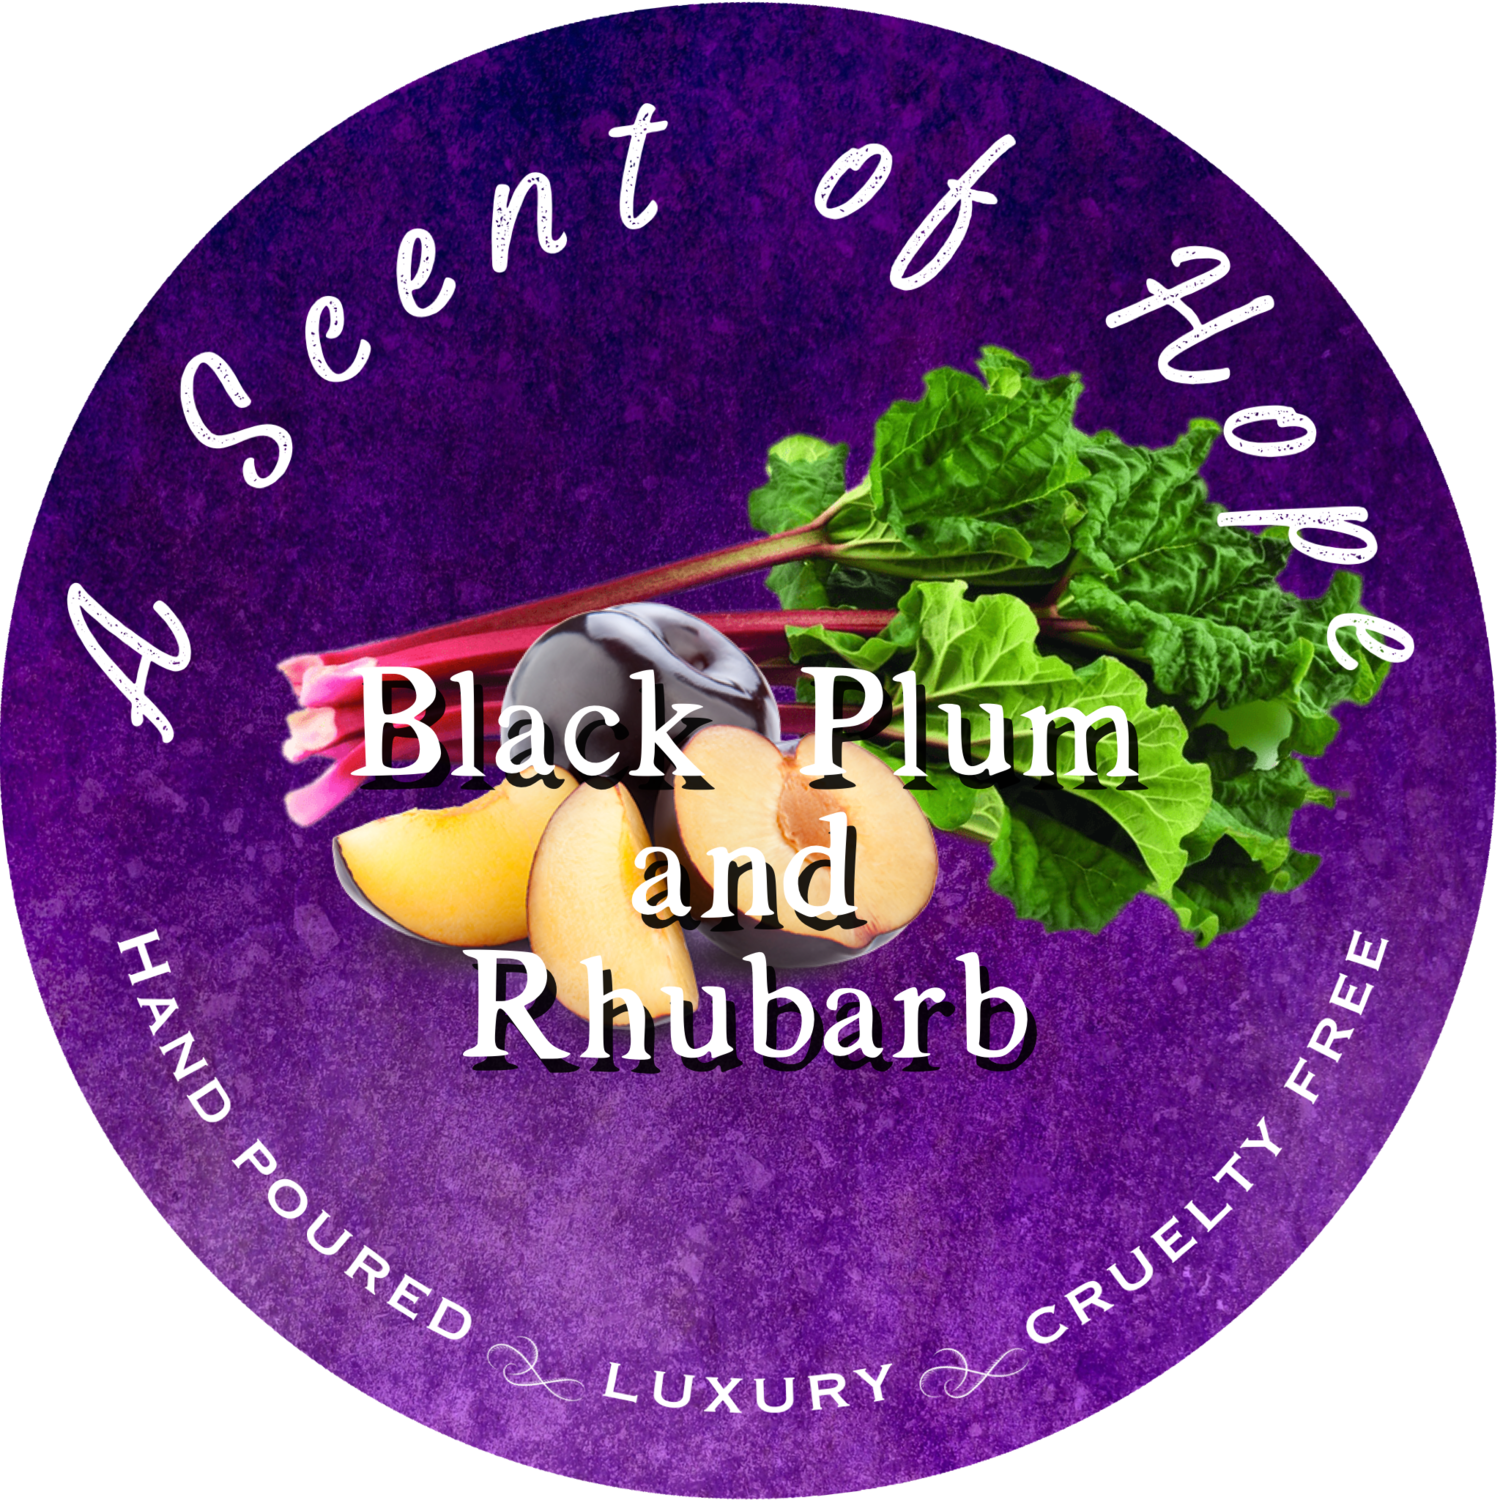 Black Plum and Rhubarb